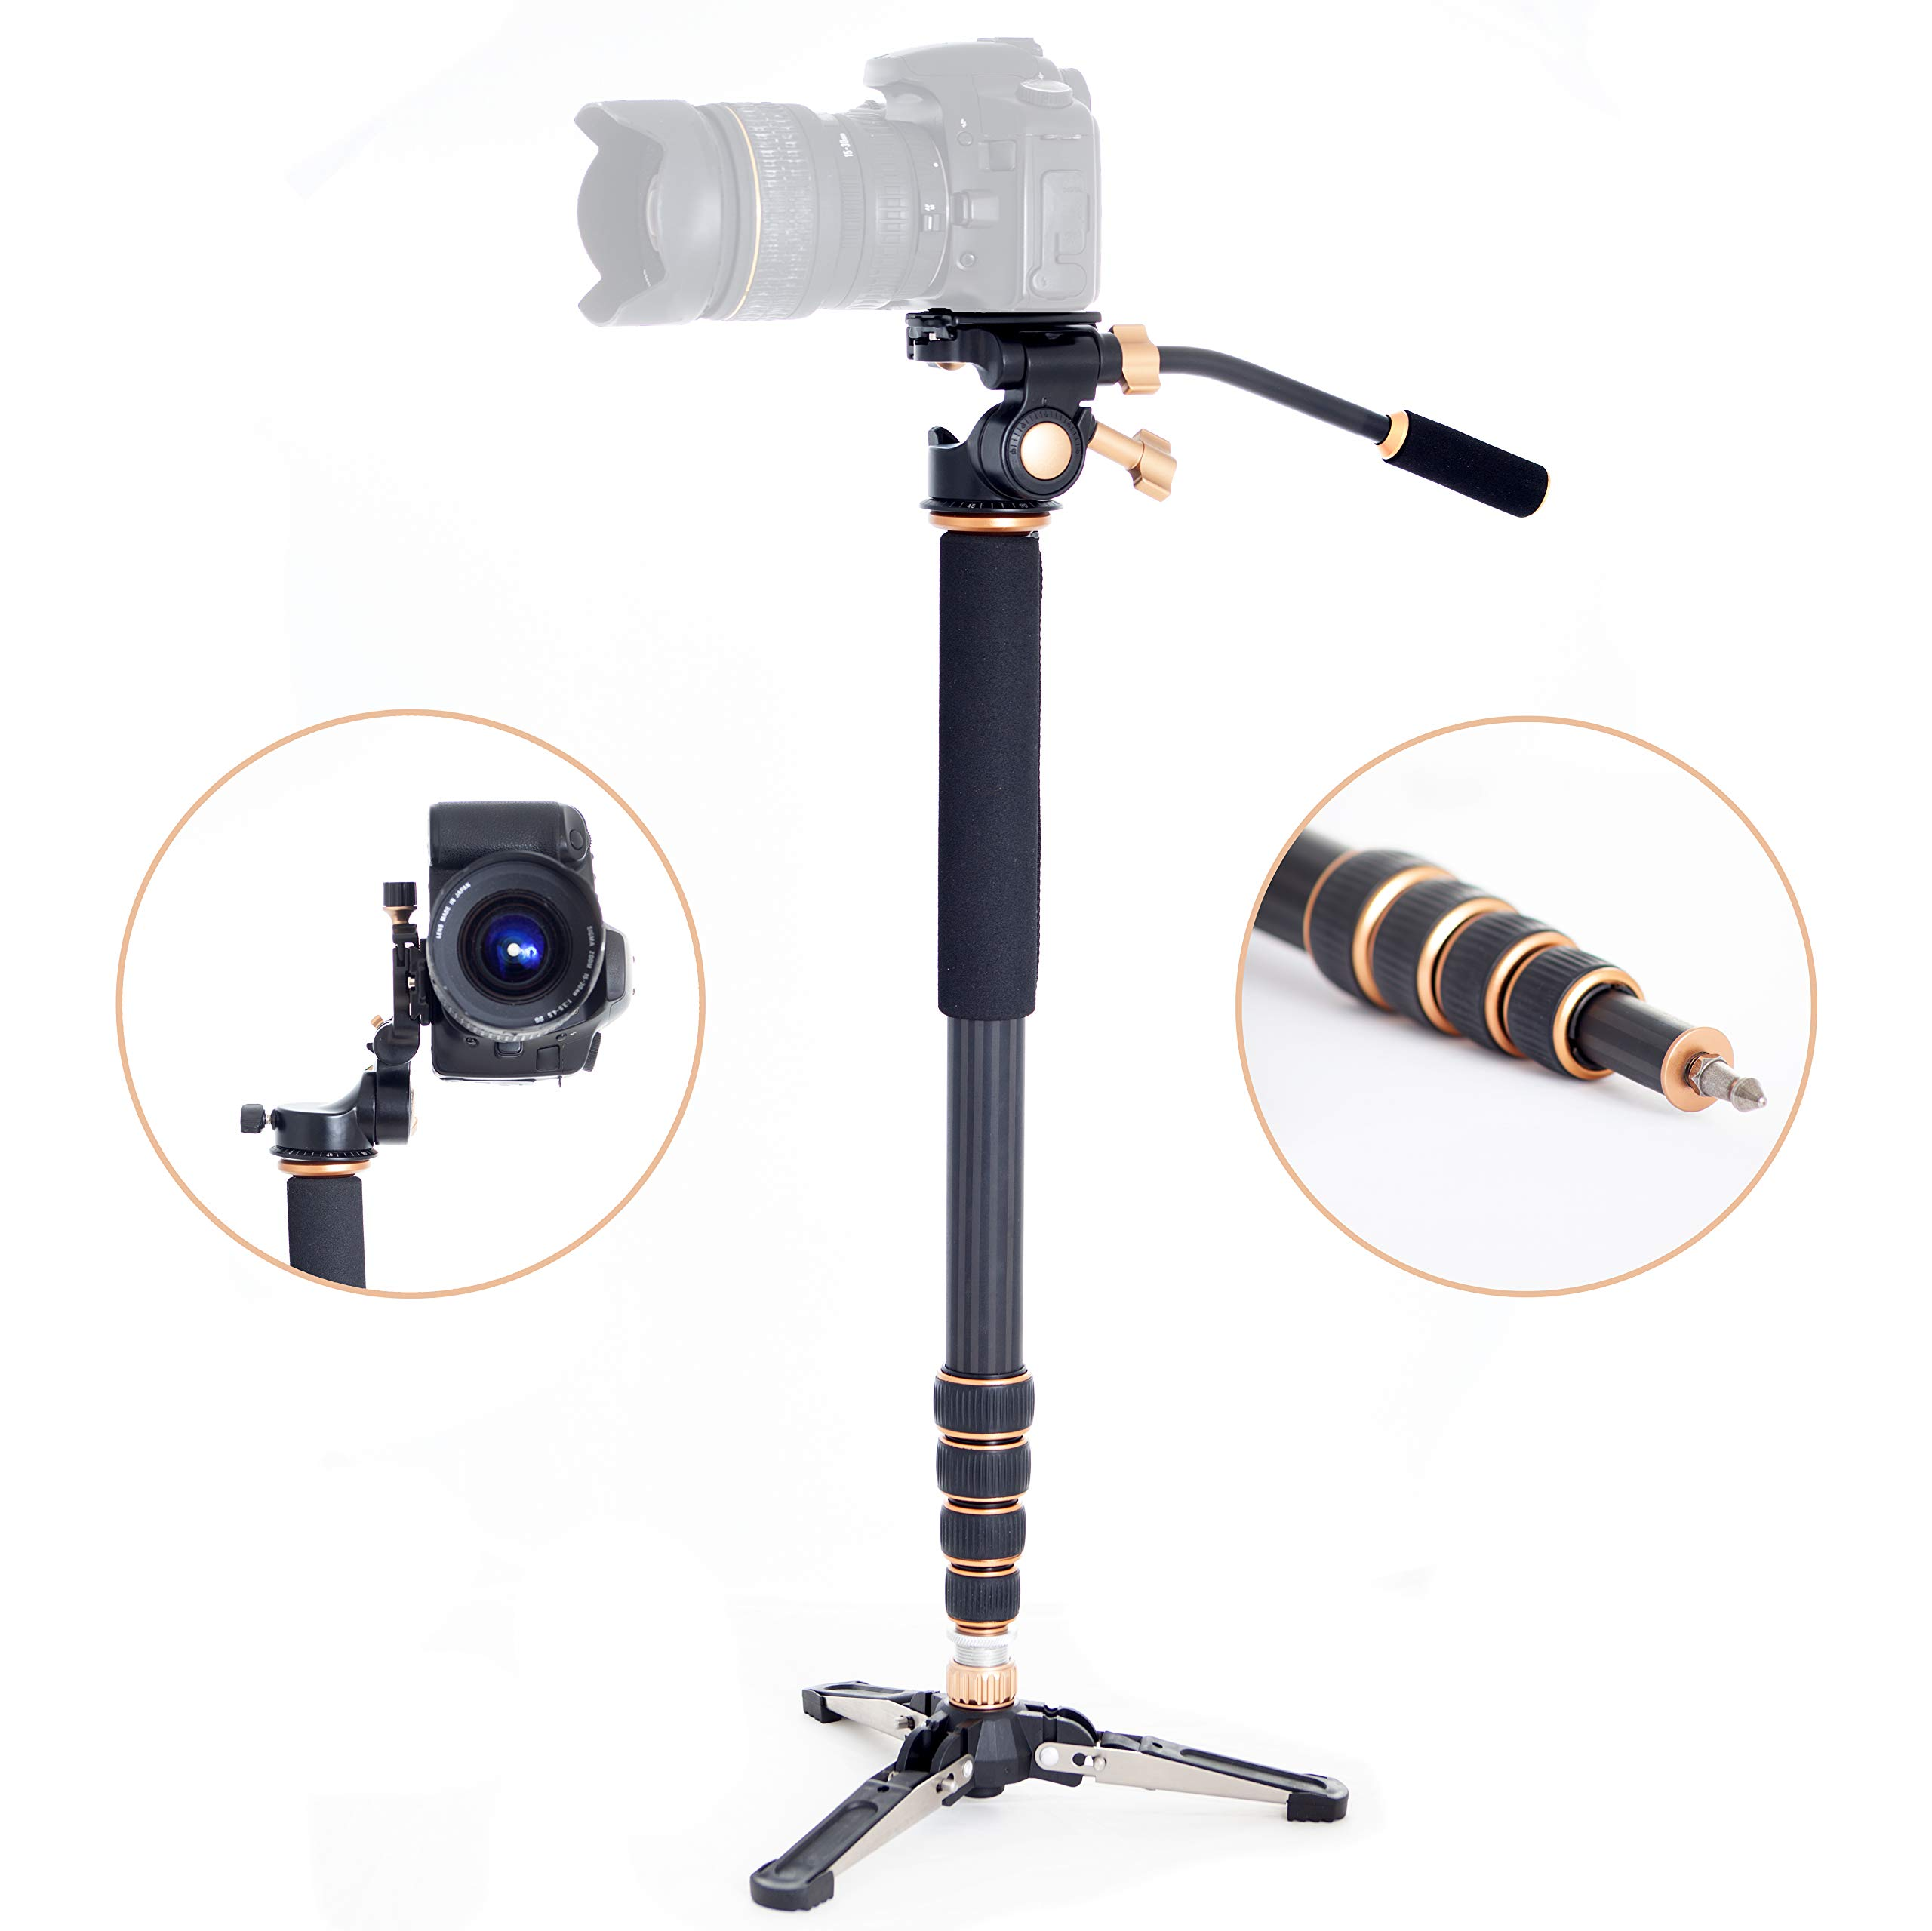 Professional Carbon Fiber Monopod Kit with Photo and Video 3-Way Head & Multi Direction Fluid Base for DSRL Cameras and Videocameras Pole Stick by Sensei Photo (Image #1)